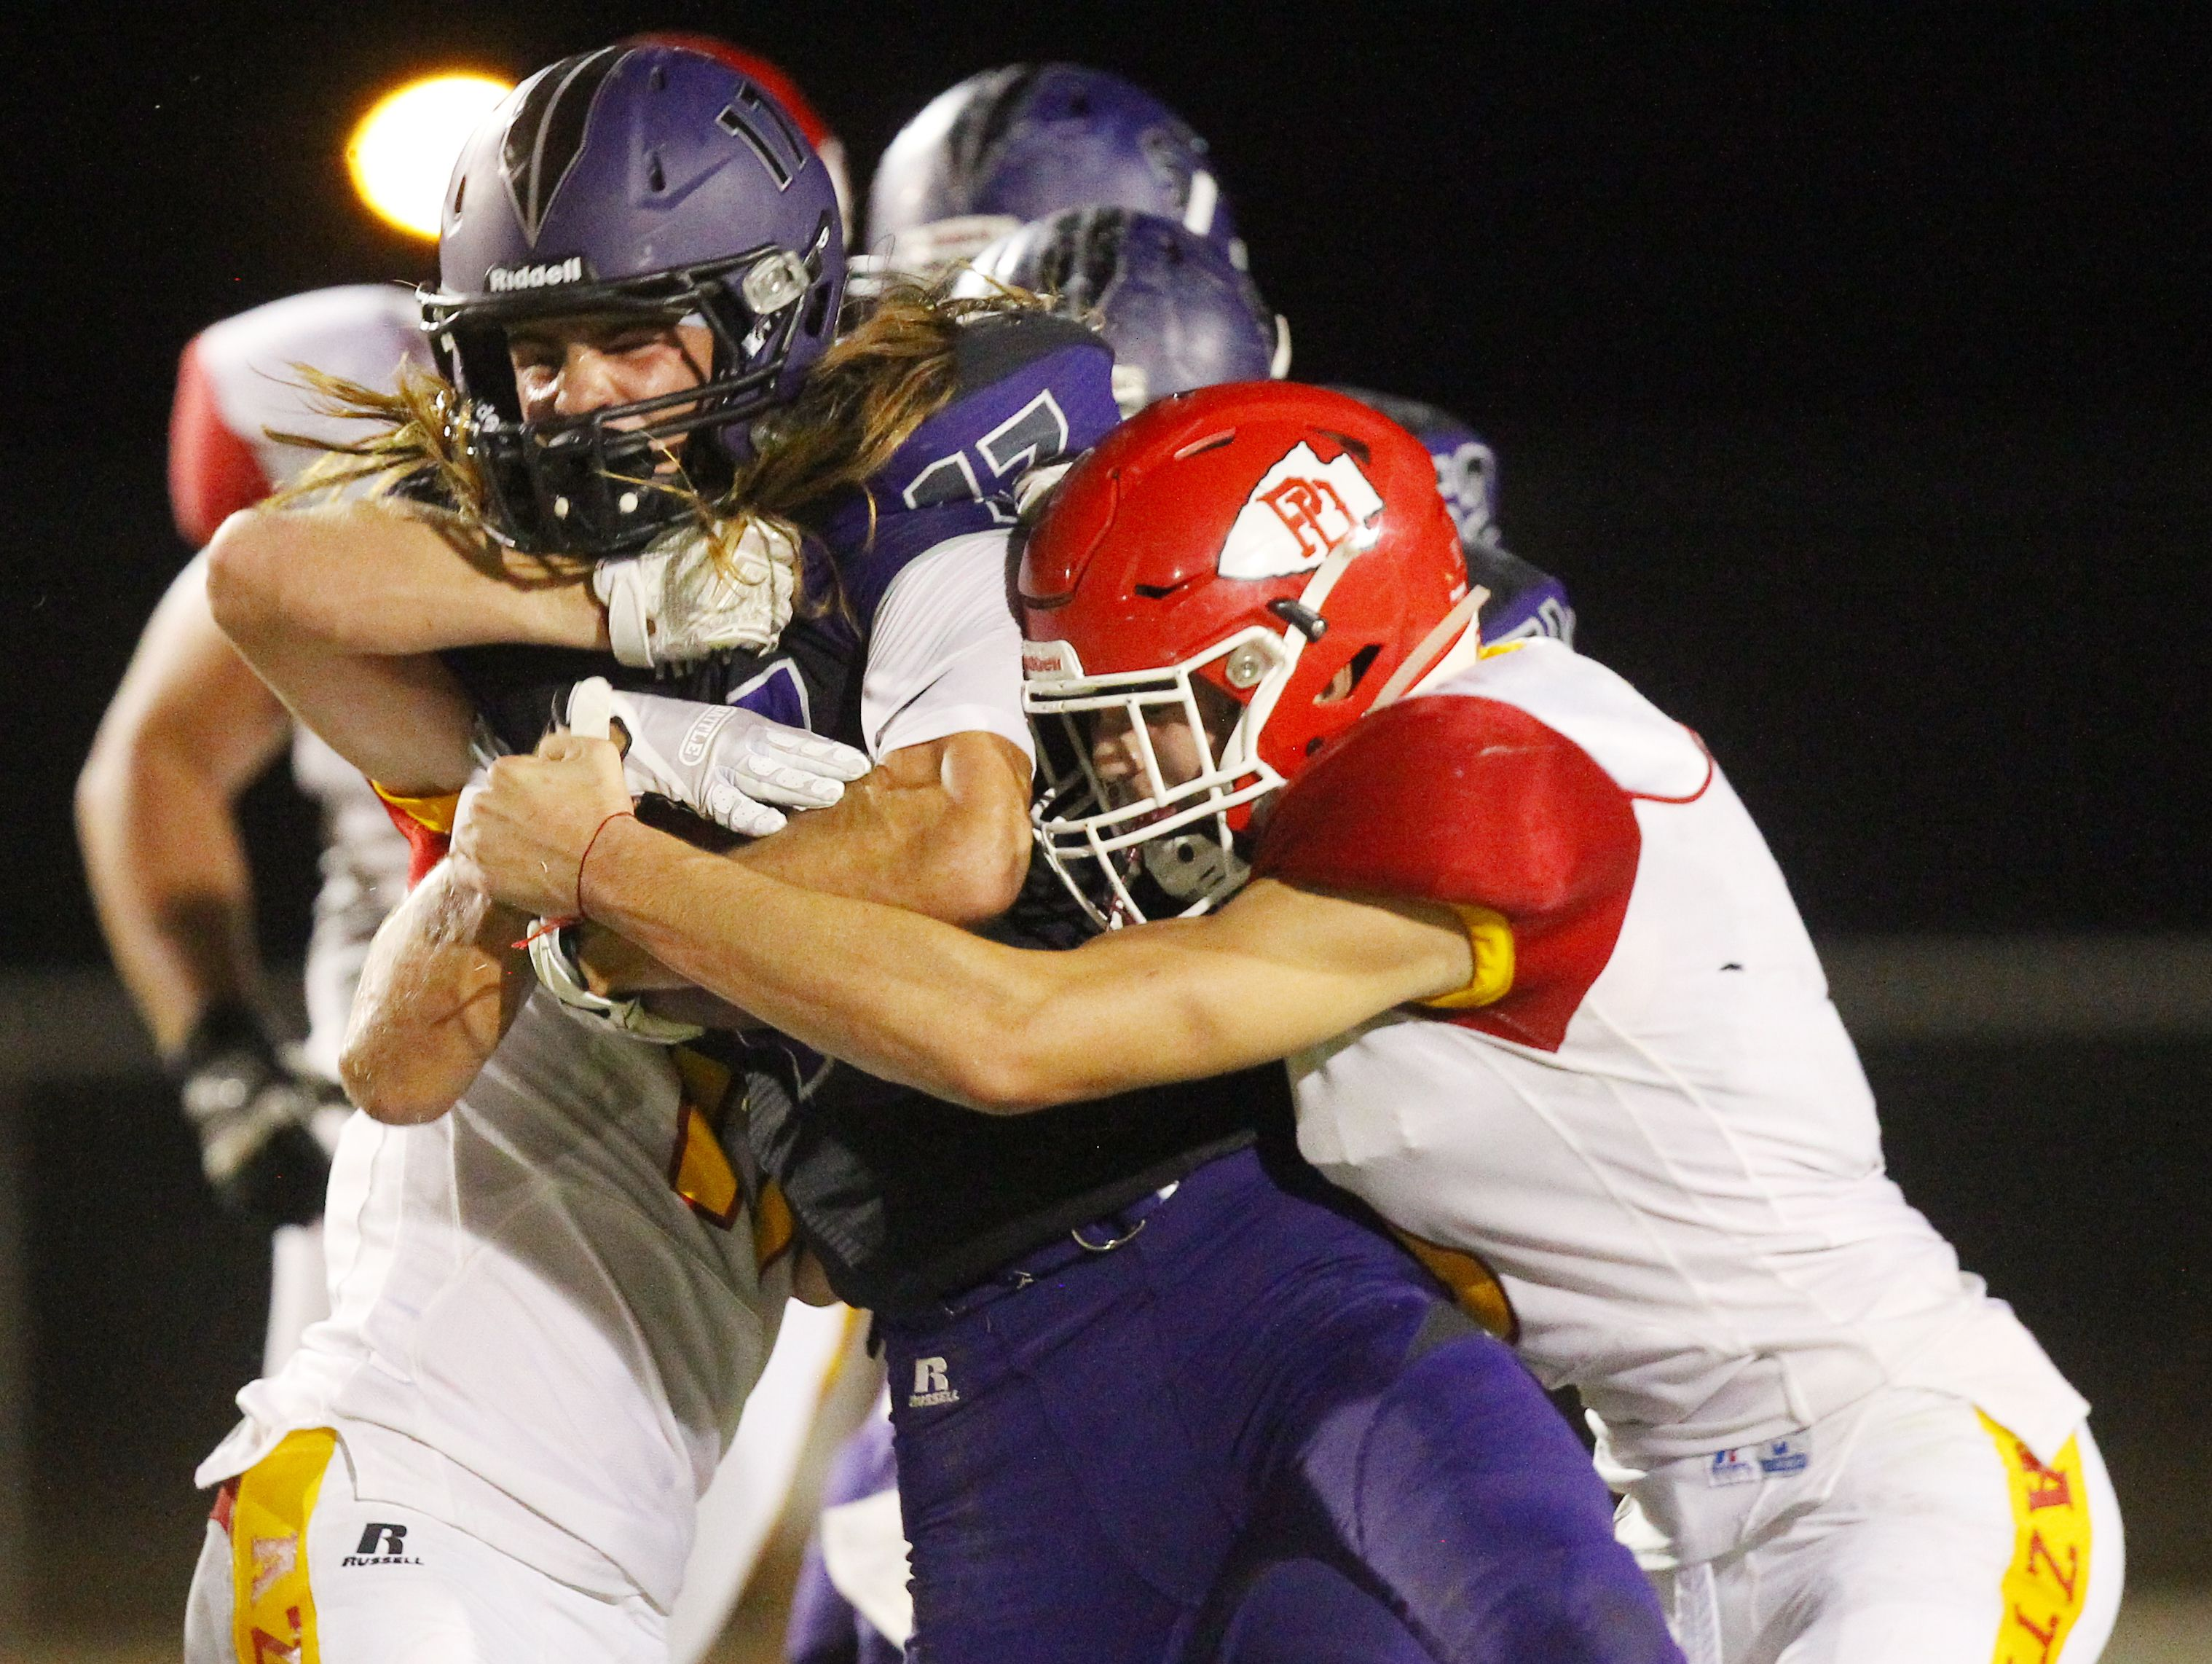 Shadow Hills High School's Jason JD Lang runs for yardage as several Palm Desert High School defender make an attempt to bring him down during their game at Indio.